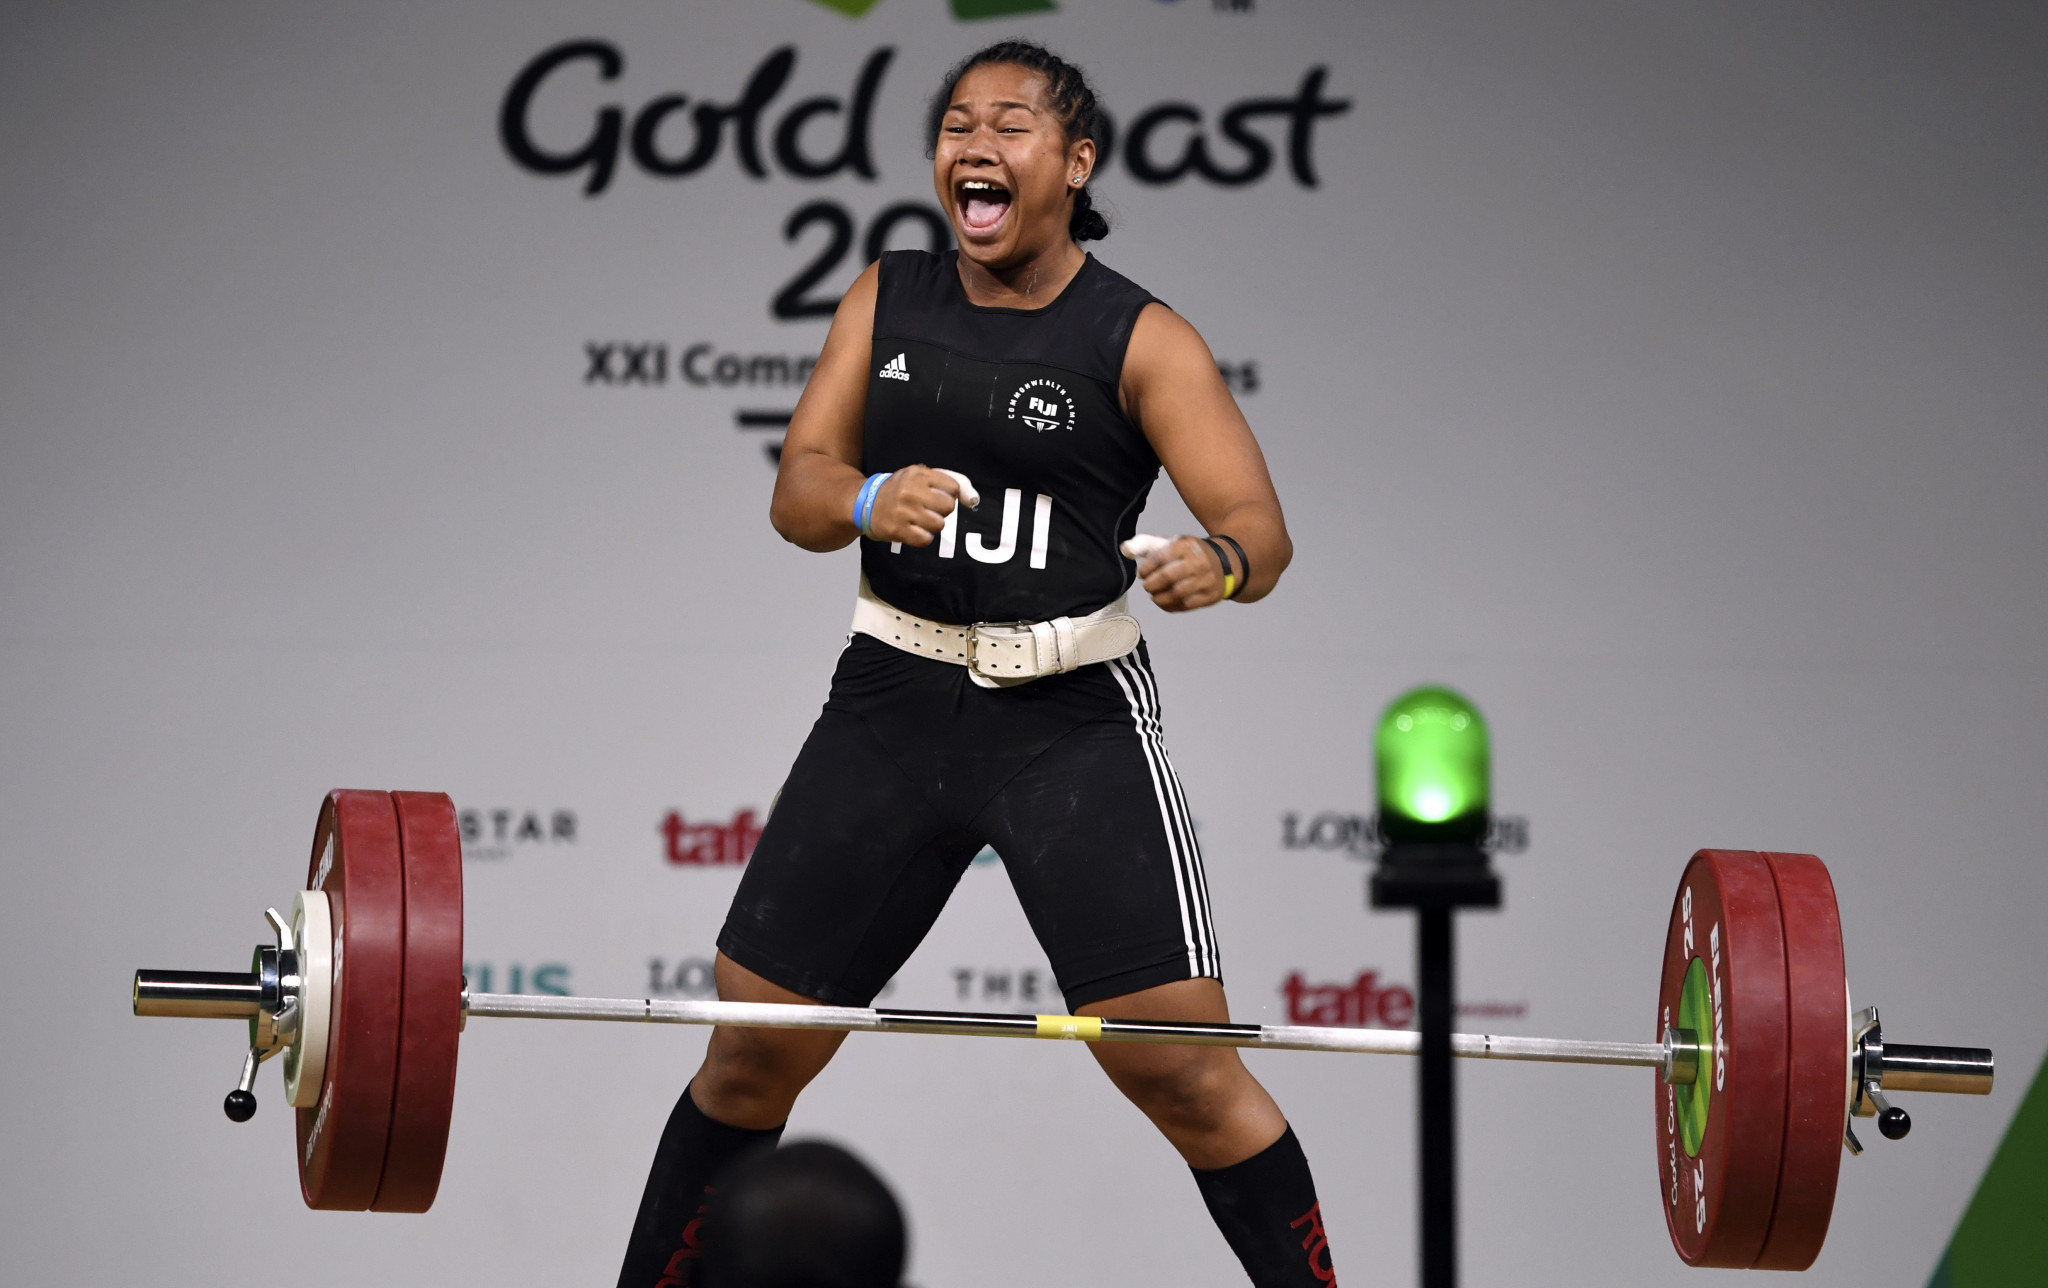 Eileen Cikamatana won gold for Fiji at the 2018 Commonwealth Games in the women's 90kg weightlifting final ©Getty Images